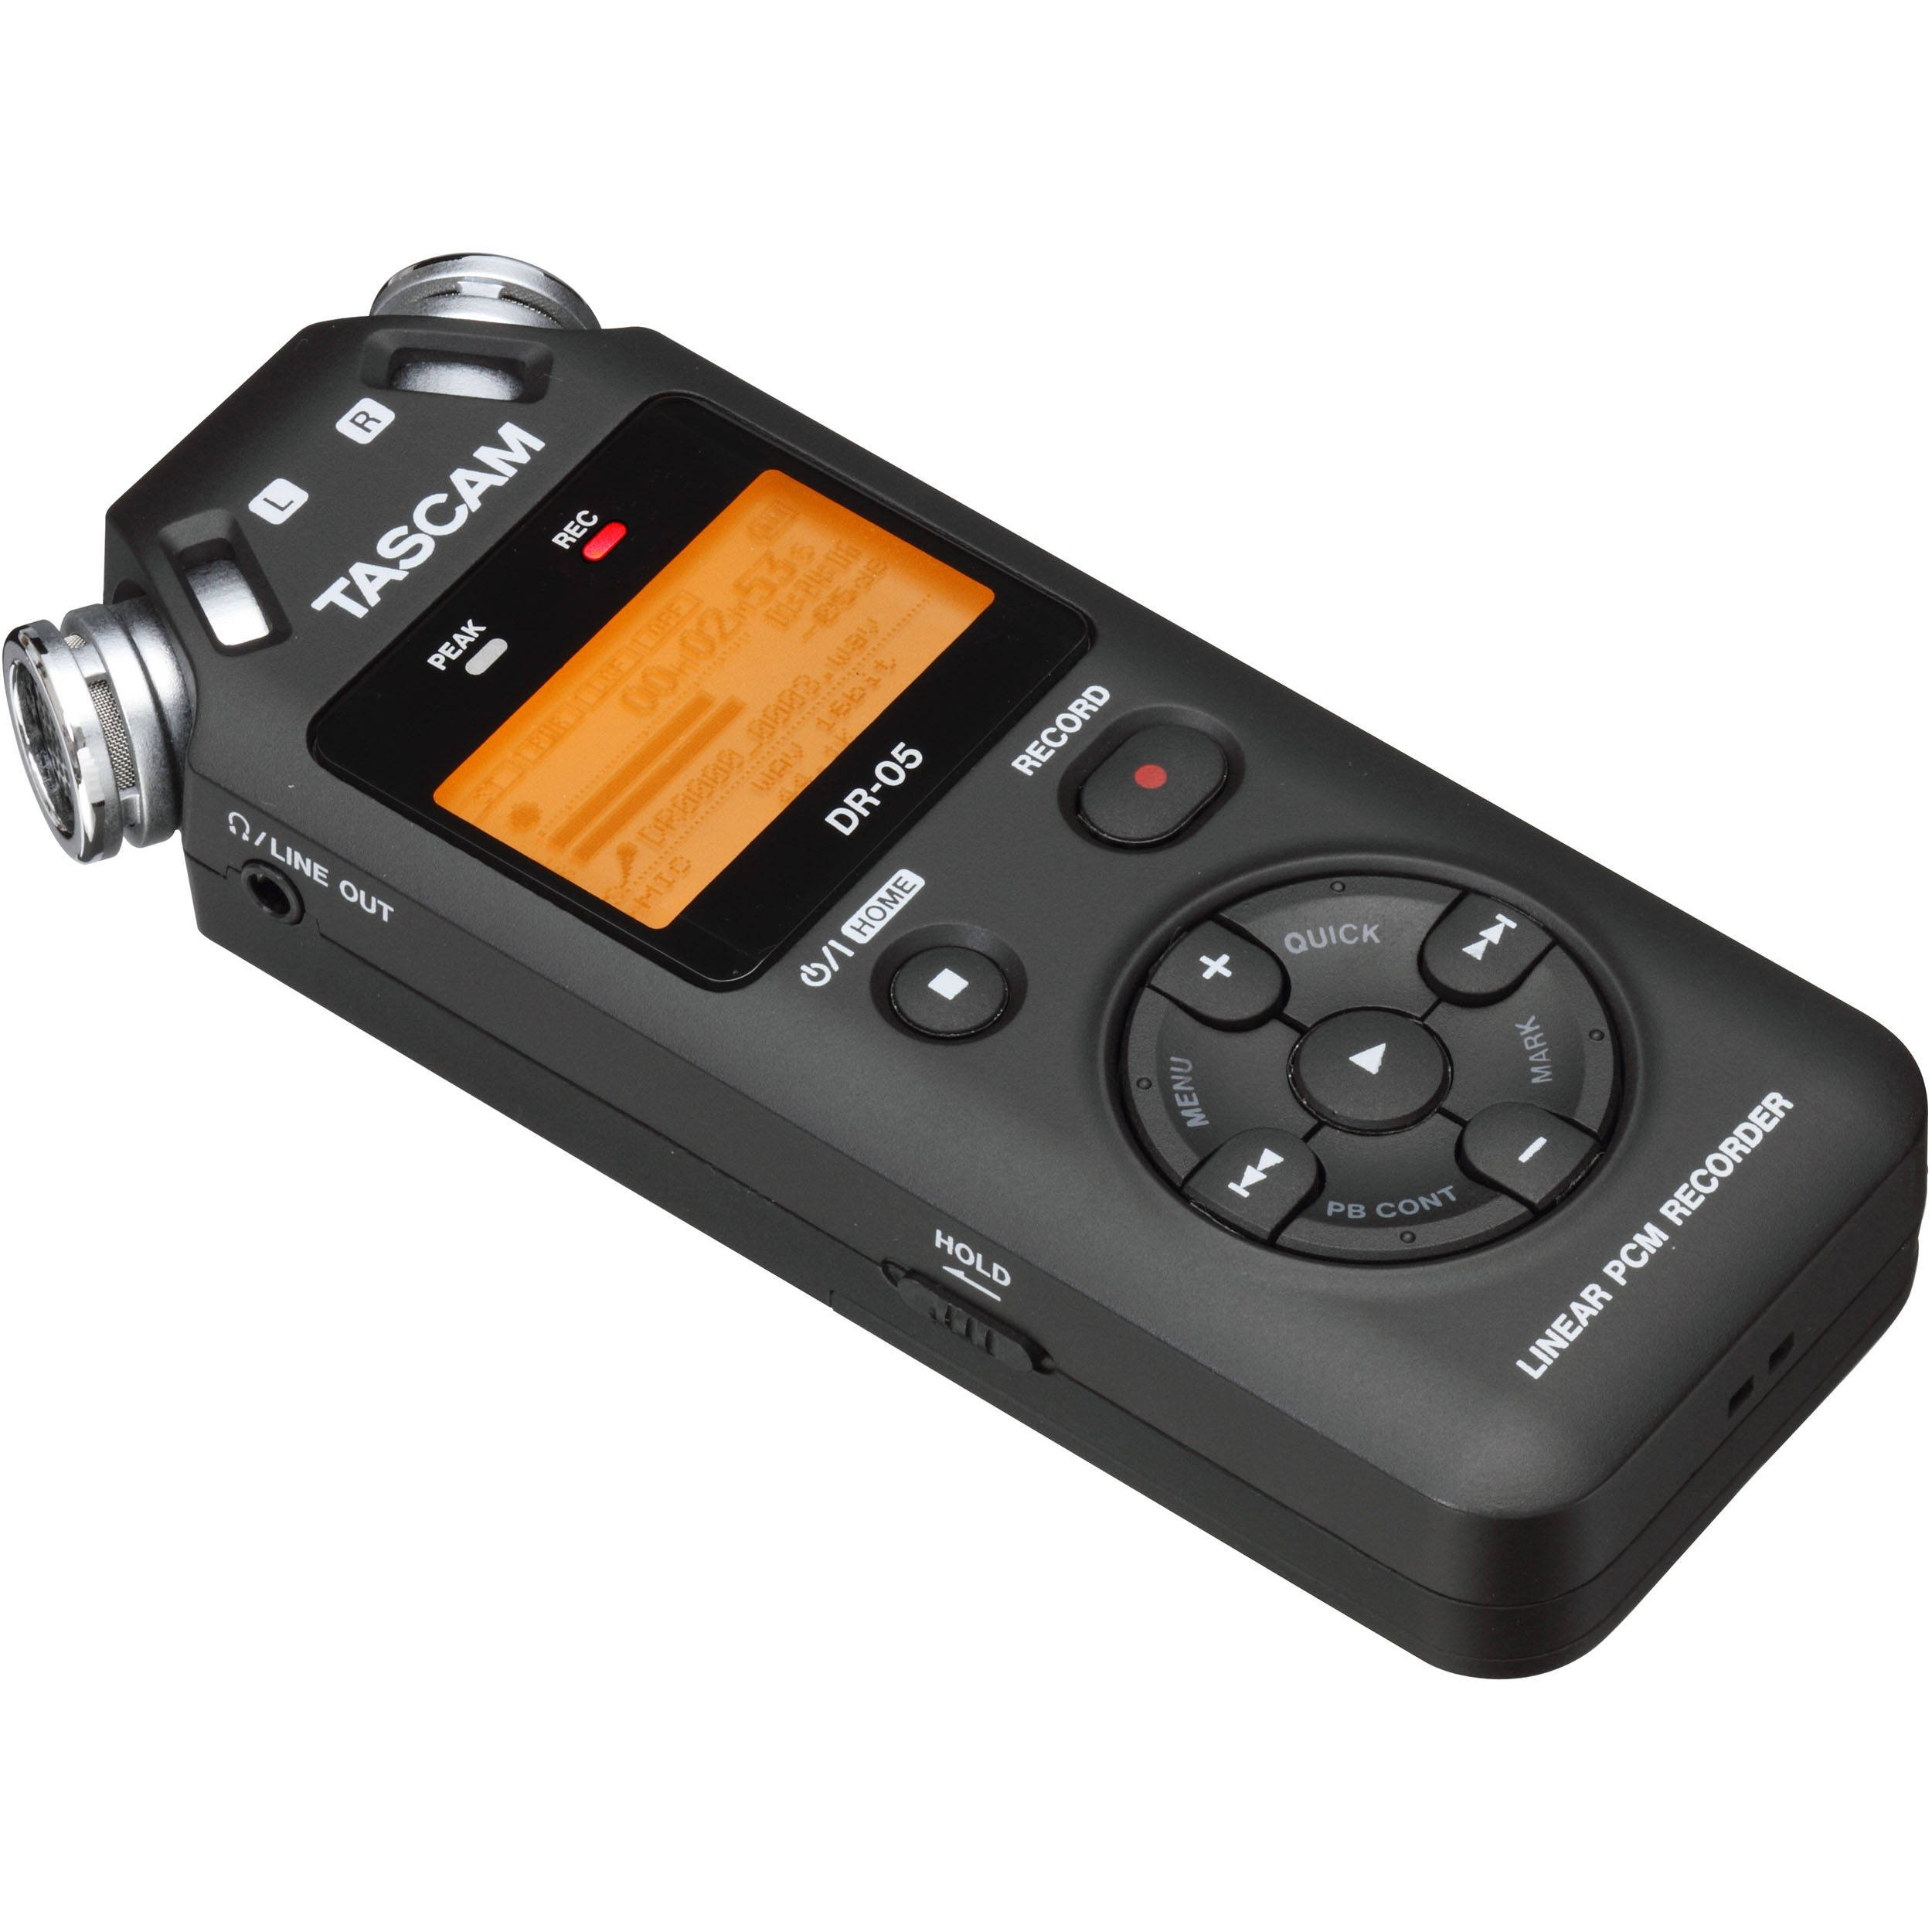 Tascam DR-05 (Version 2) Portable Handheld Digital Audio Recorder (Black) with Deluxe accessory bundle by Tascam (Image #4)